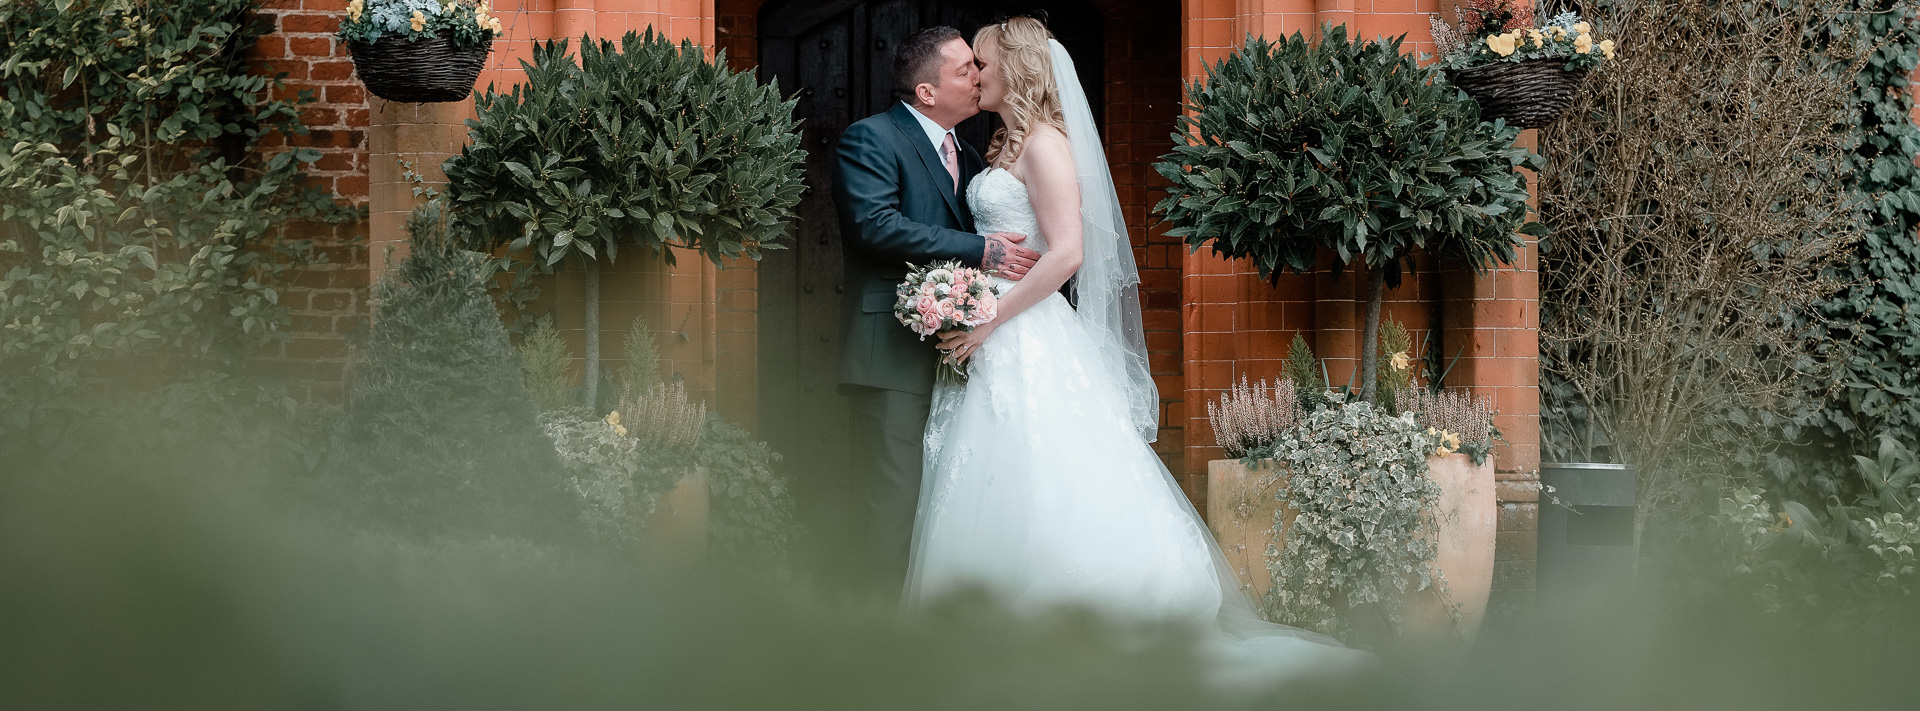 Claire and Bradleys Wedding at Woodhall Manor